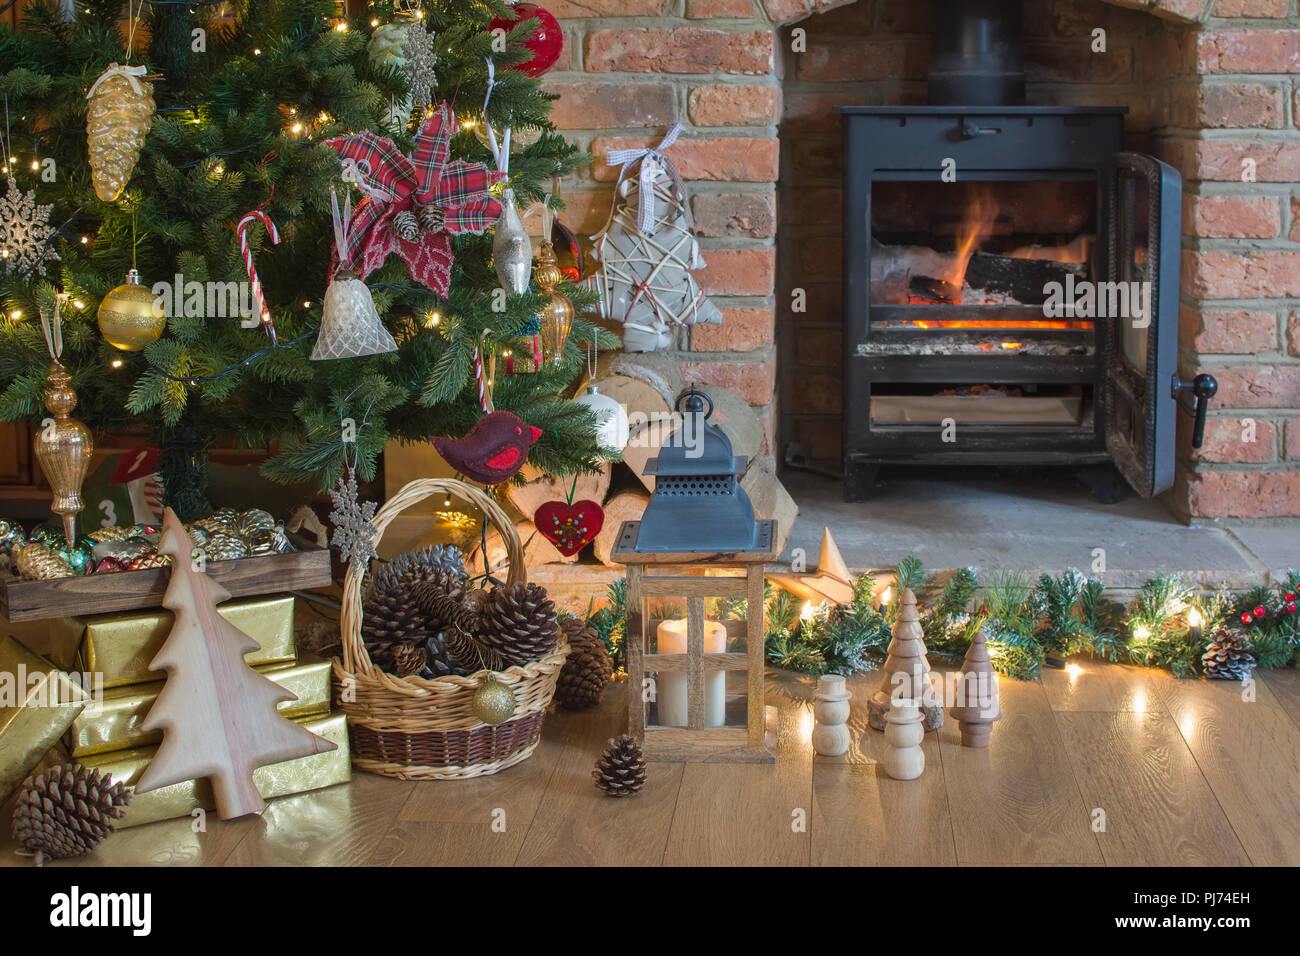 beautiful christmas setting decorated lit up christmas tree with baubles and ornaments fireplace with woodburner lantern stars and garlands sele